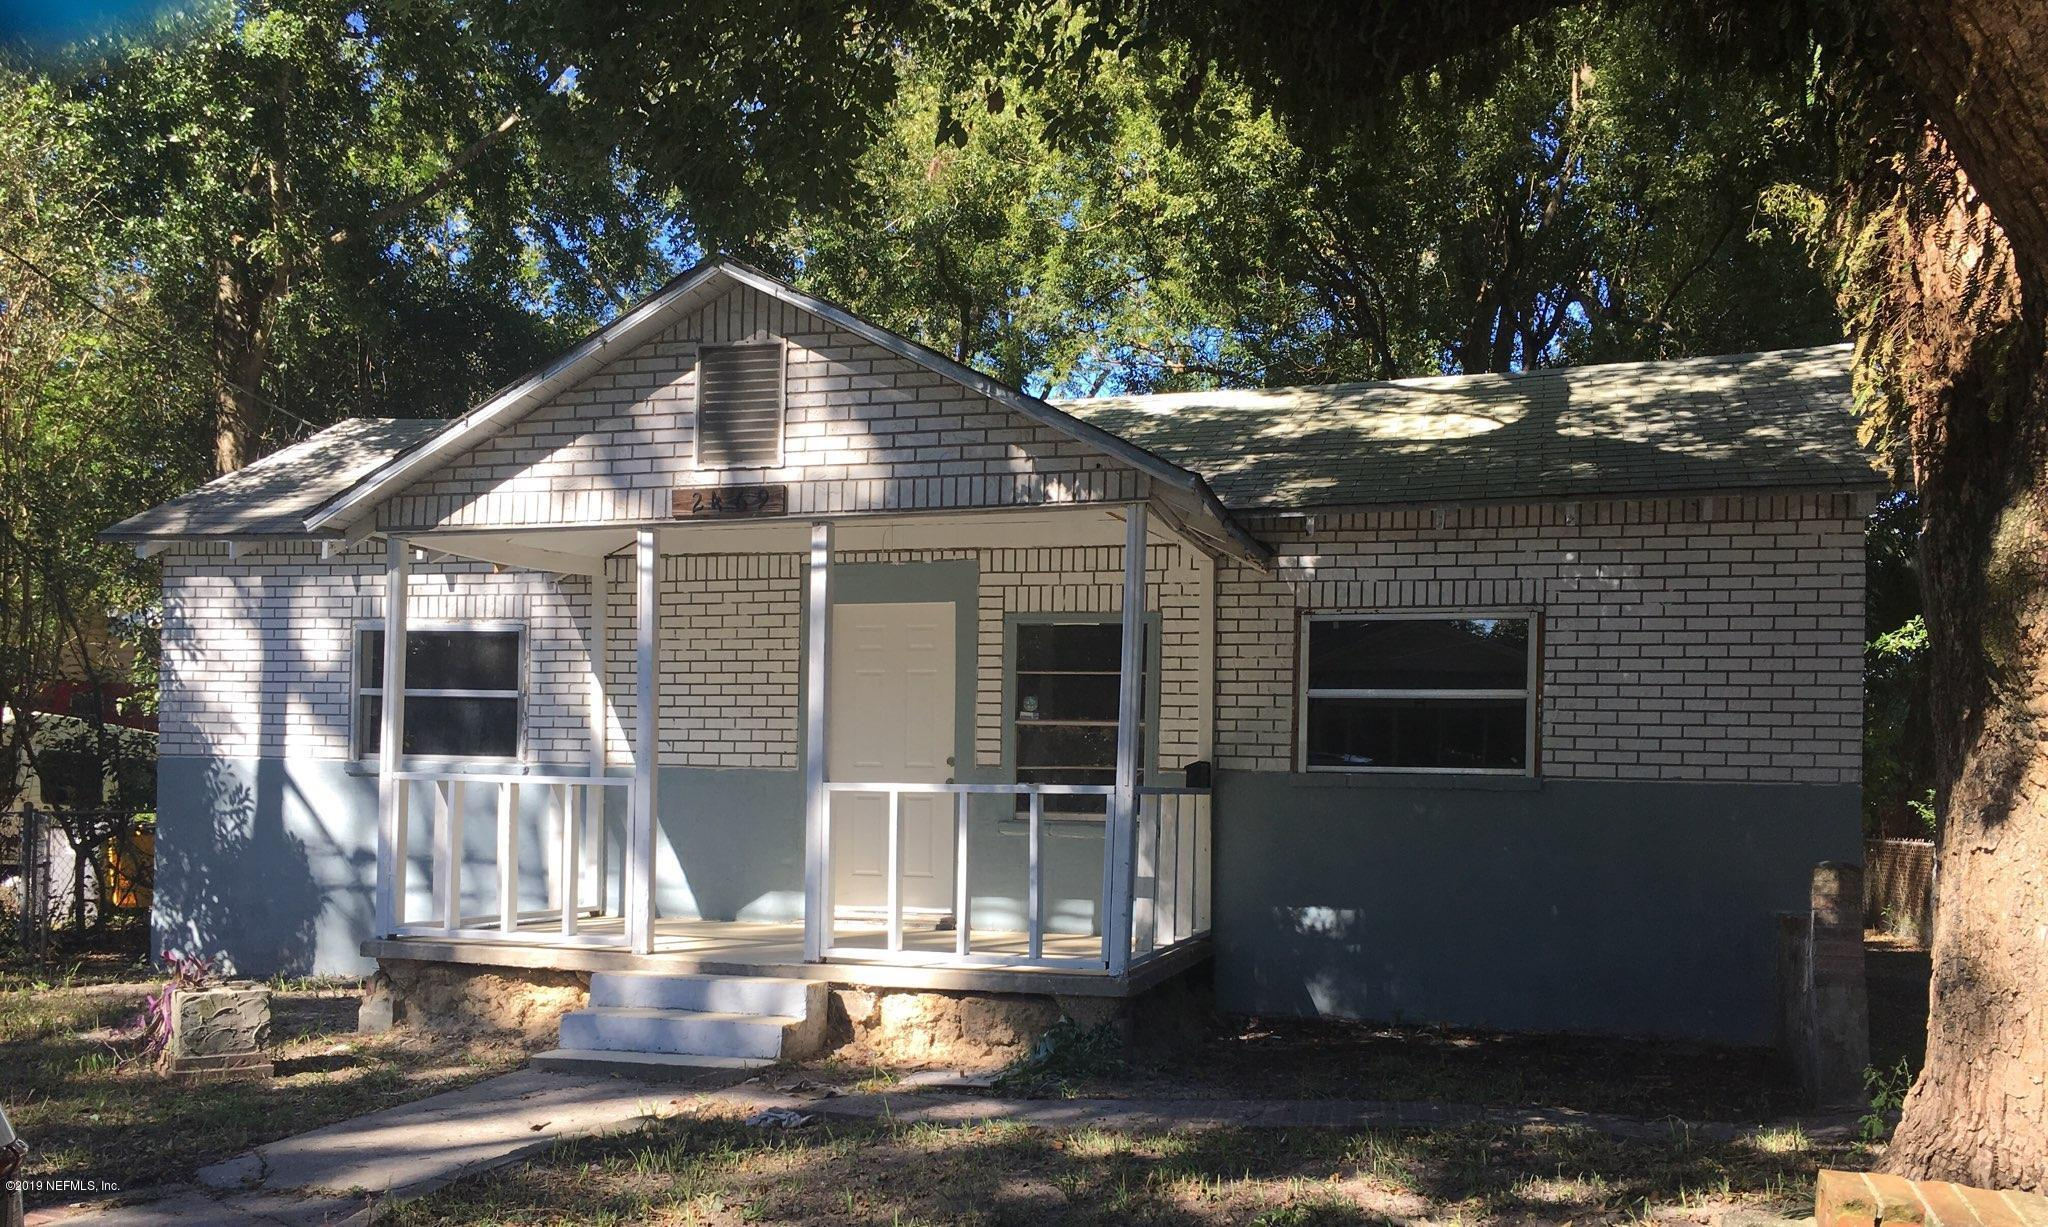 2469 WYLENE, JACKSONVILLE, FLORIDA 32209, 3 Bedrooms Bedrooms, ,1 BathroomBathrooms,Residential - single family,For sale,WYLENE,991007